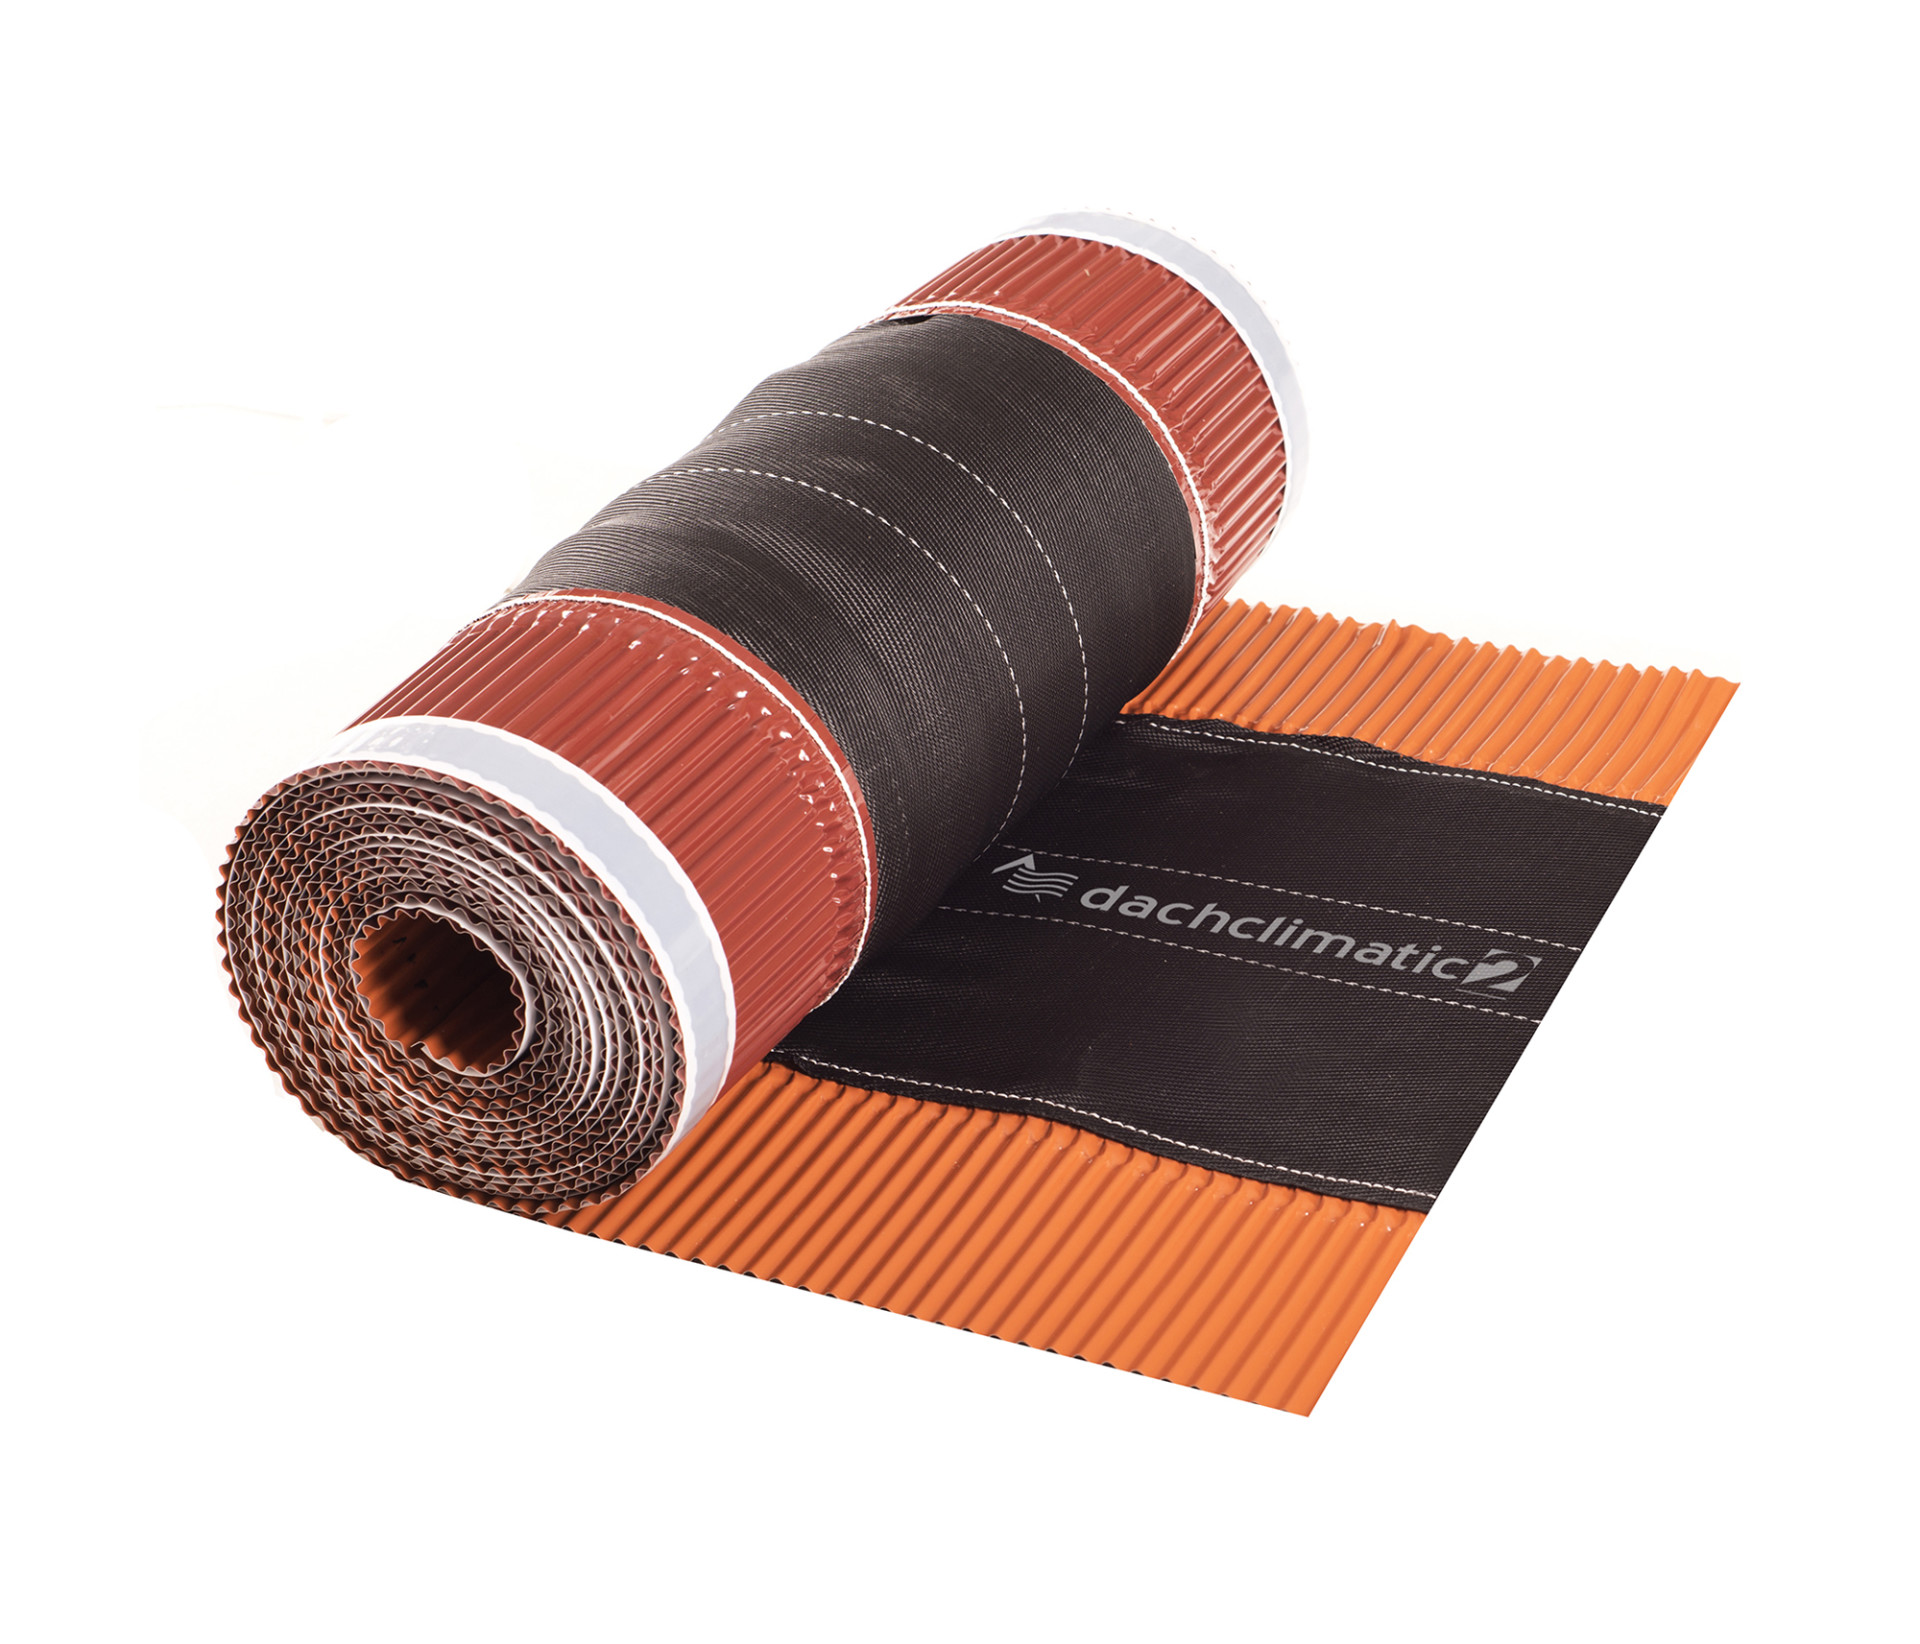 guide lined treads tapes res tape rolls up and traction product high mats mat large